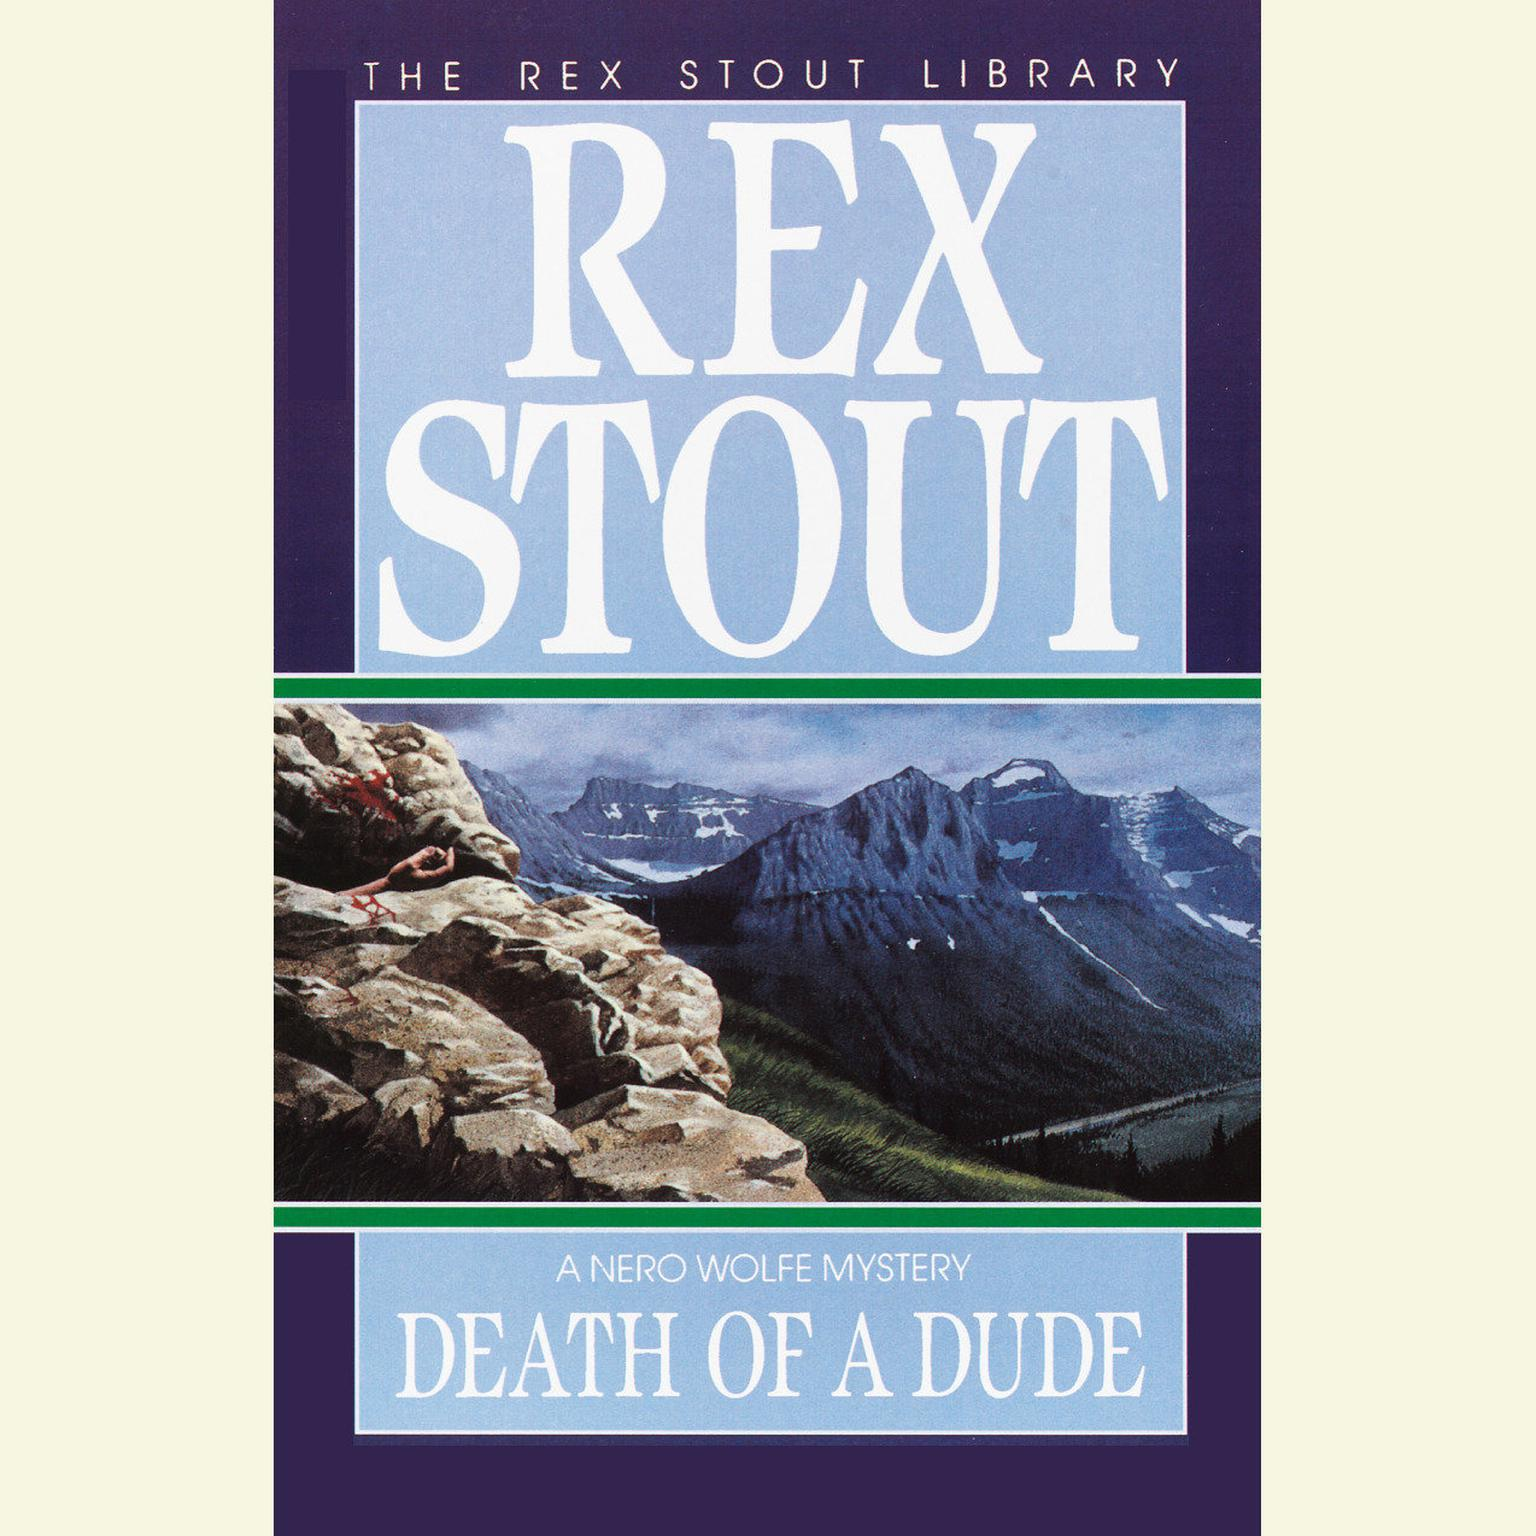 Printable Death of a Dude Audiobook Cover Art